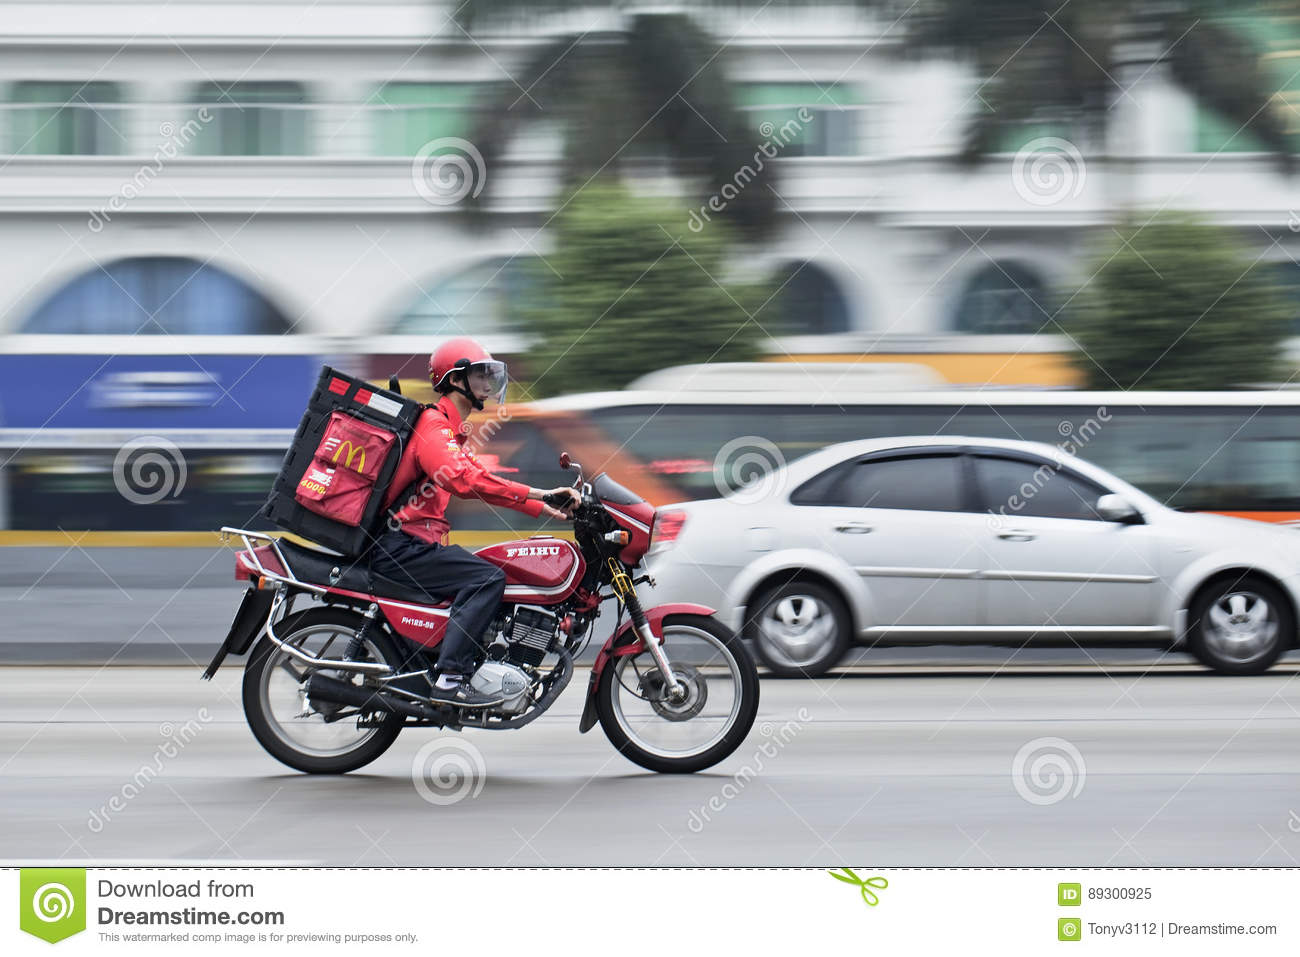 McDonald delivery on a motorcycle, Guangzhou, China